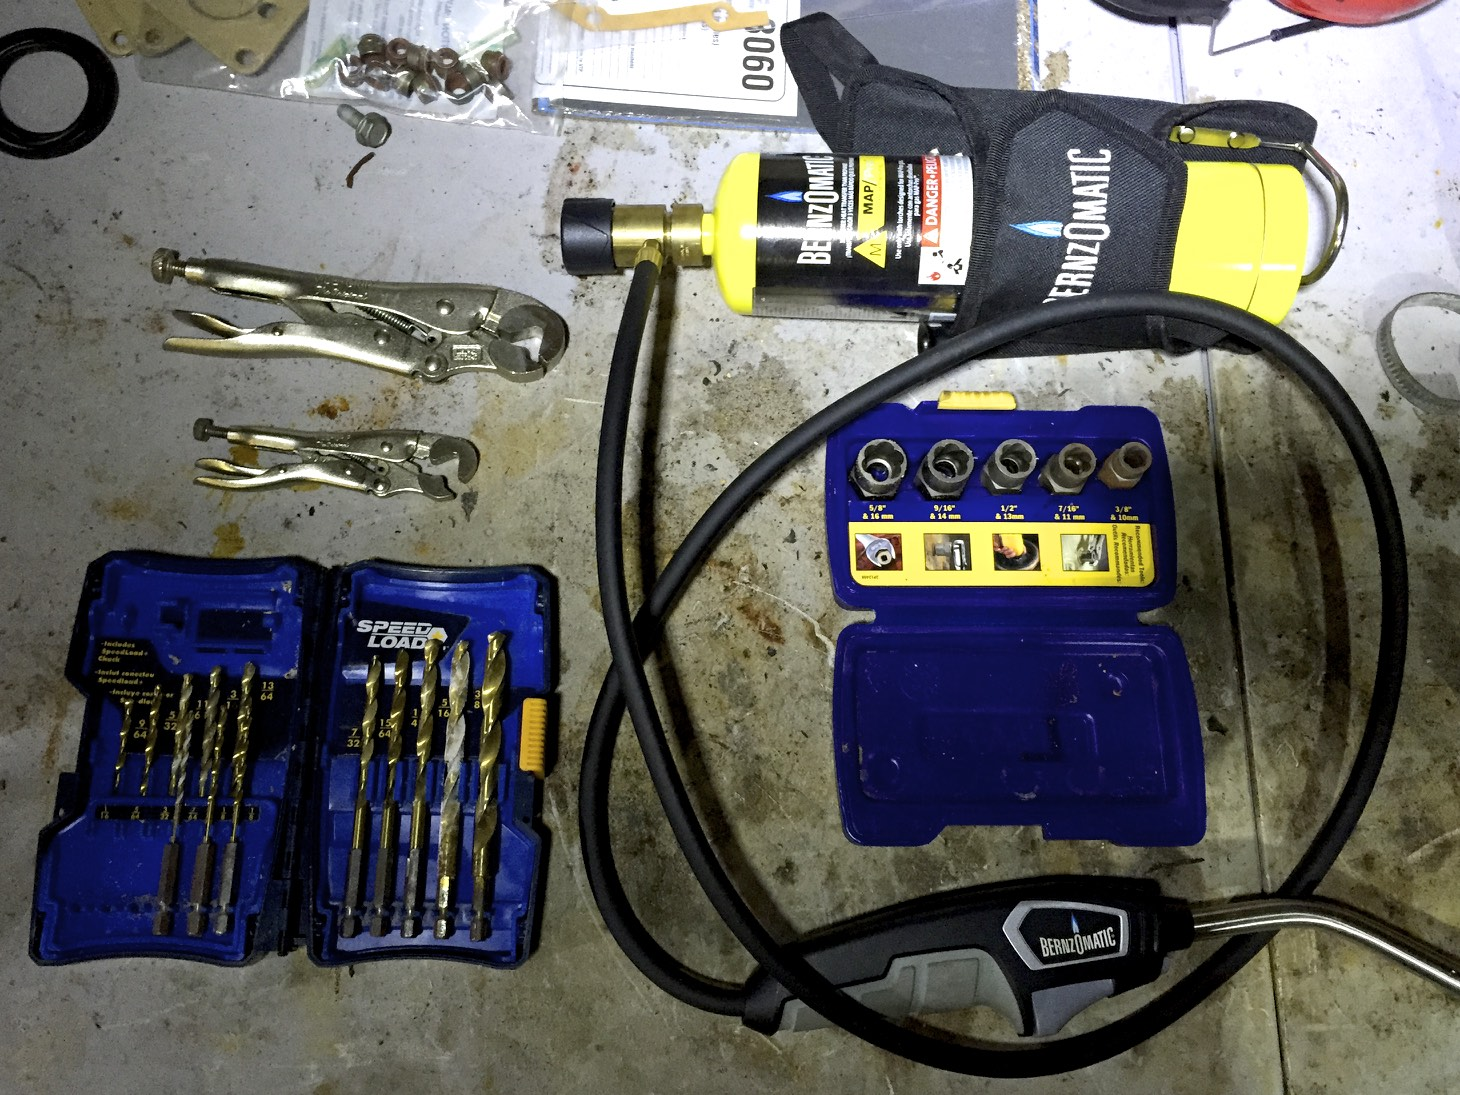 Some bolt removal tools: bolt vice grips (top left), drill bits (bottom left), a MAP torch (top right), and bolt grip extractors (middle right)